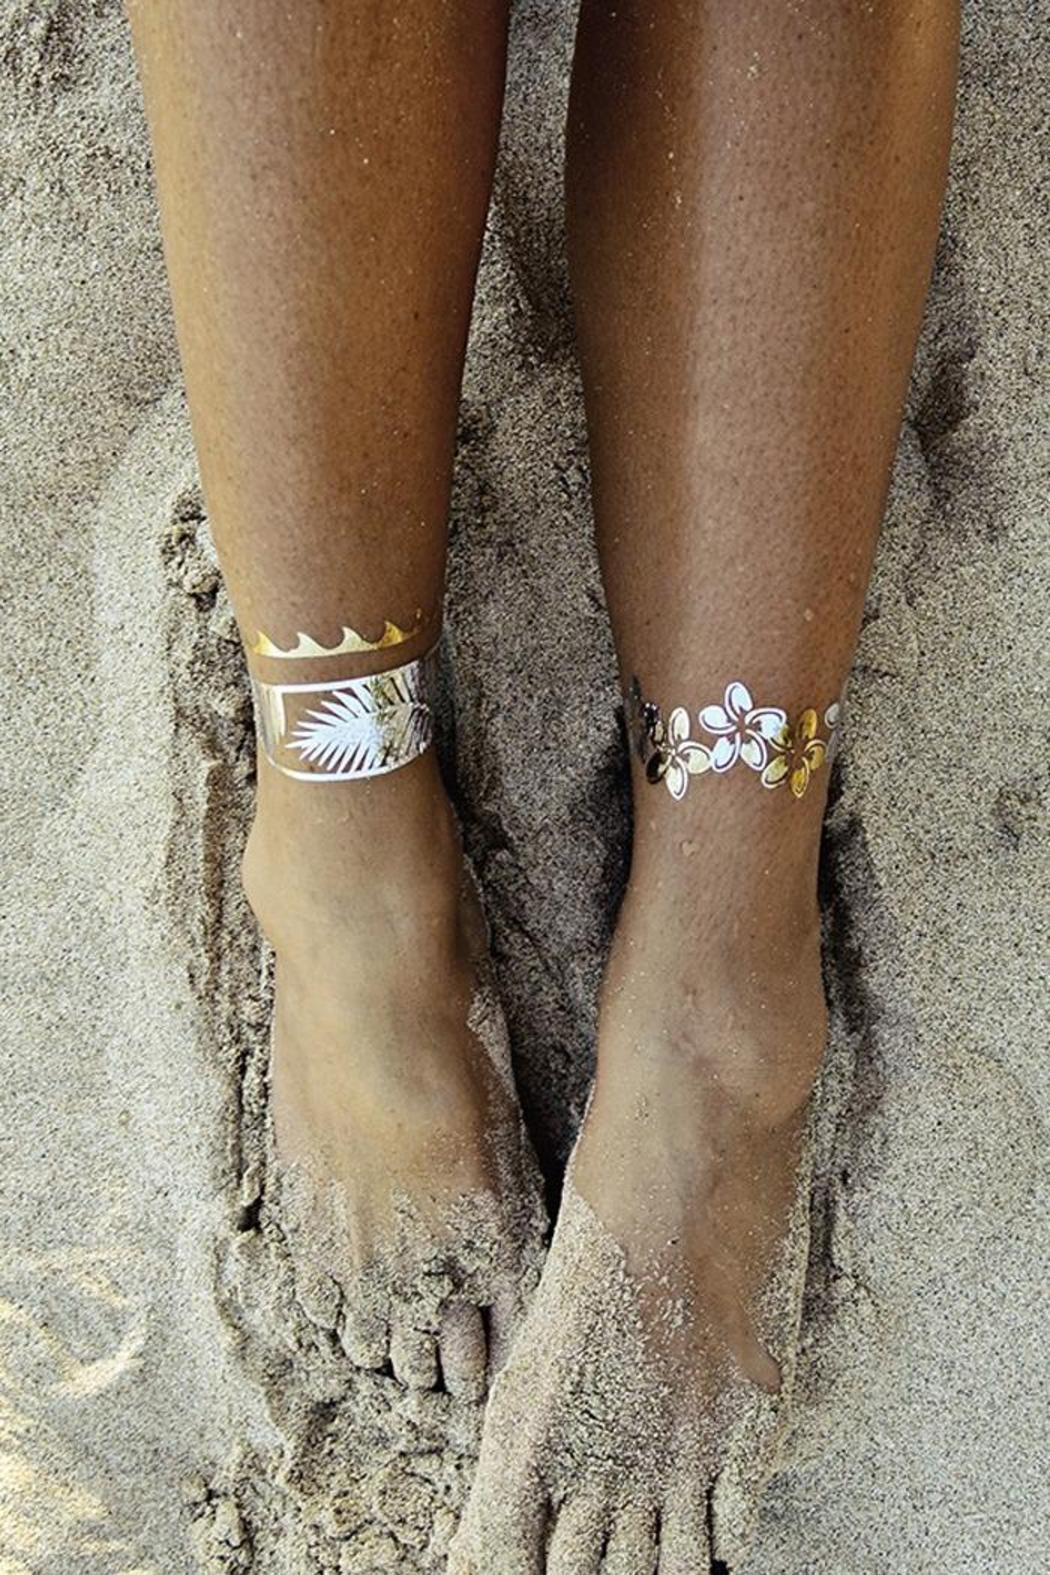 Flash Tattoos Goldfish Kiss From Sandestin Golf And Beach Ideas And Designs